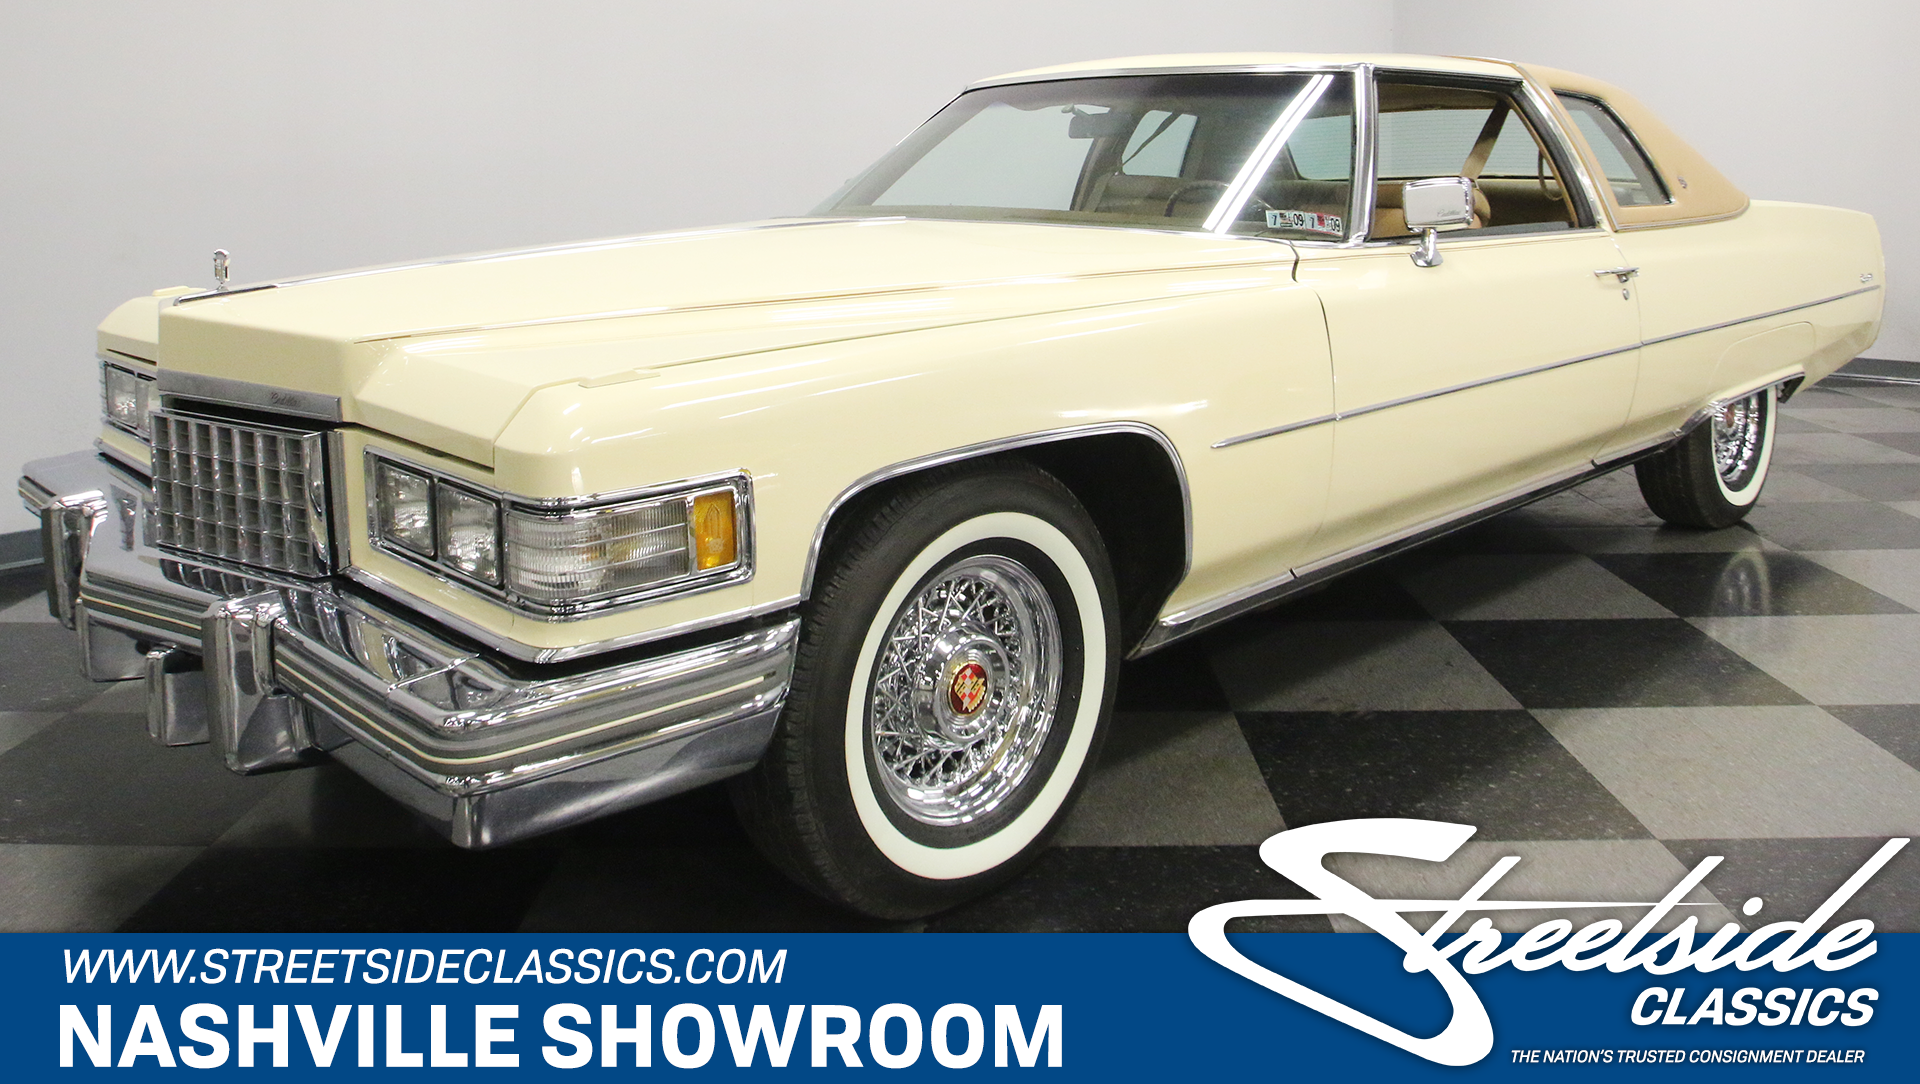 1976 Cadillac Coupe DeVille For Sale ...